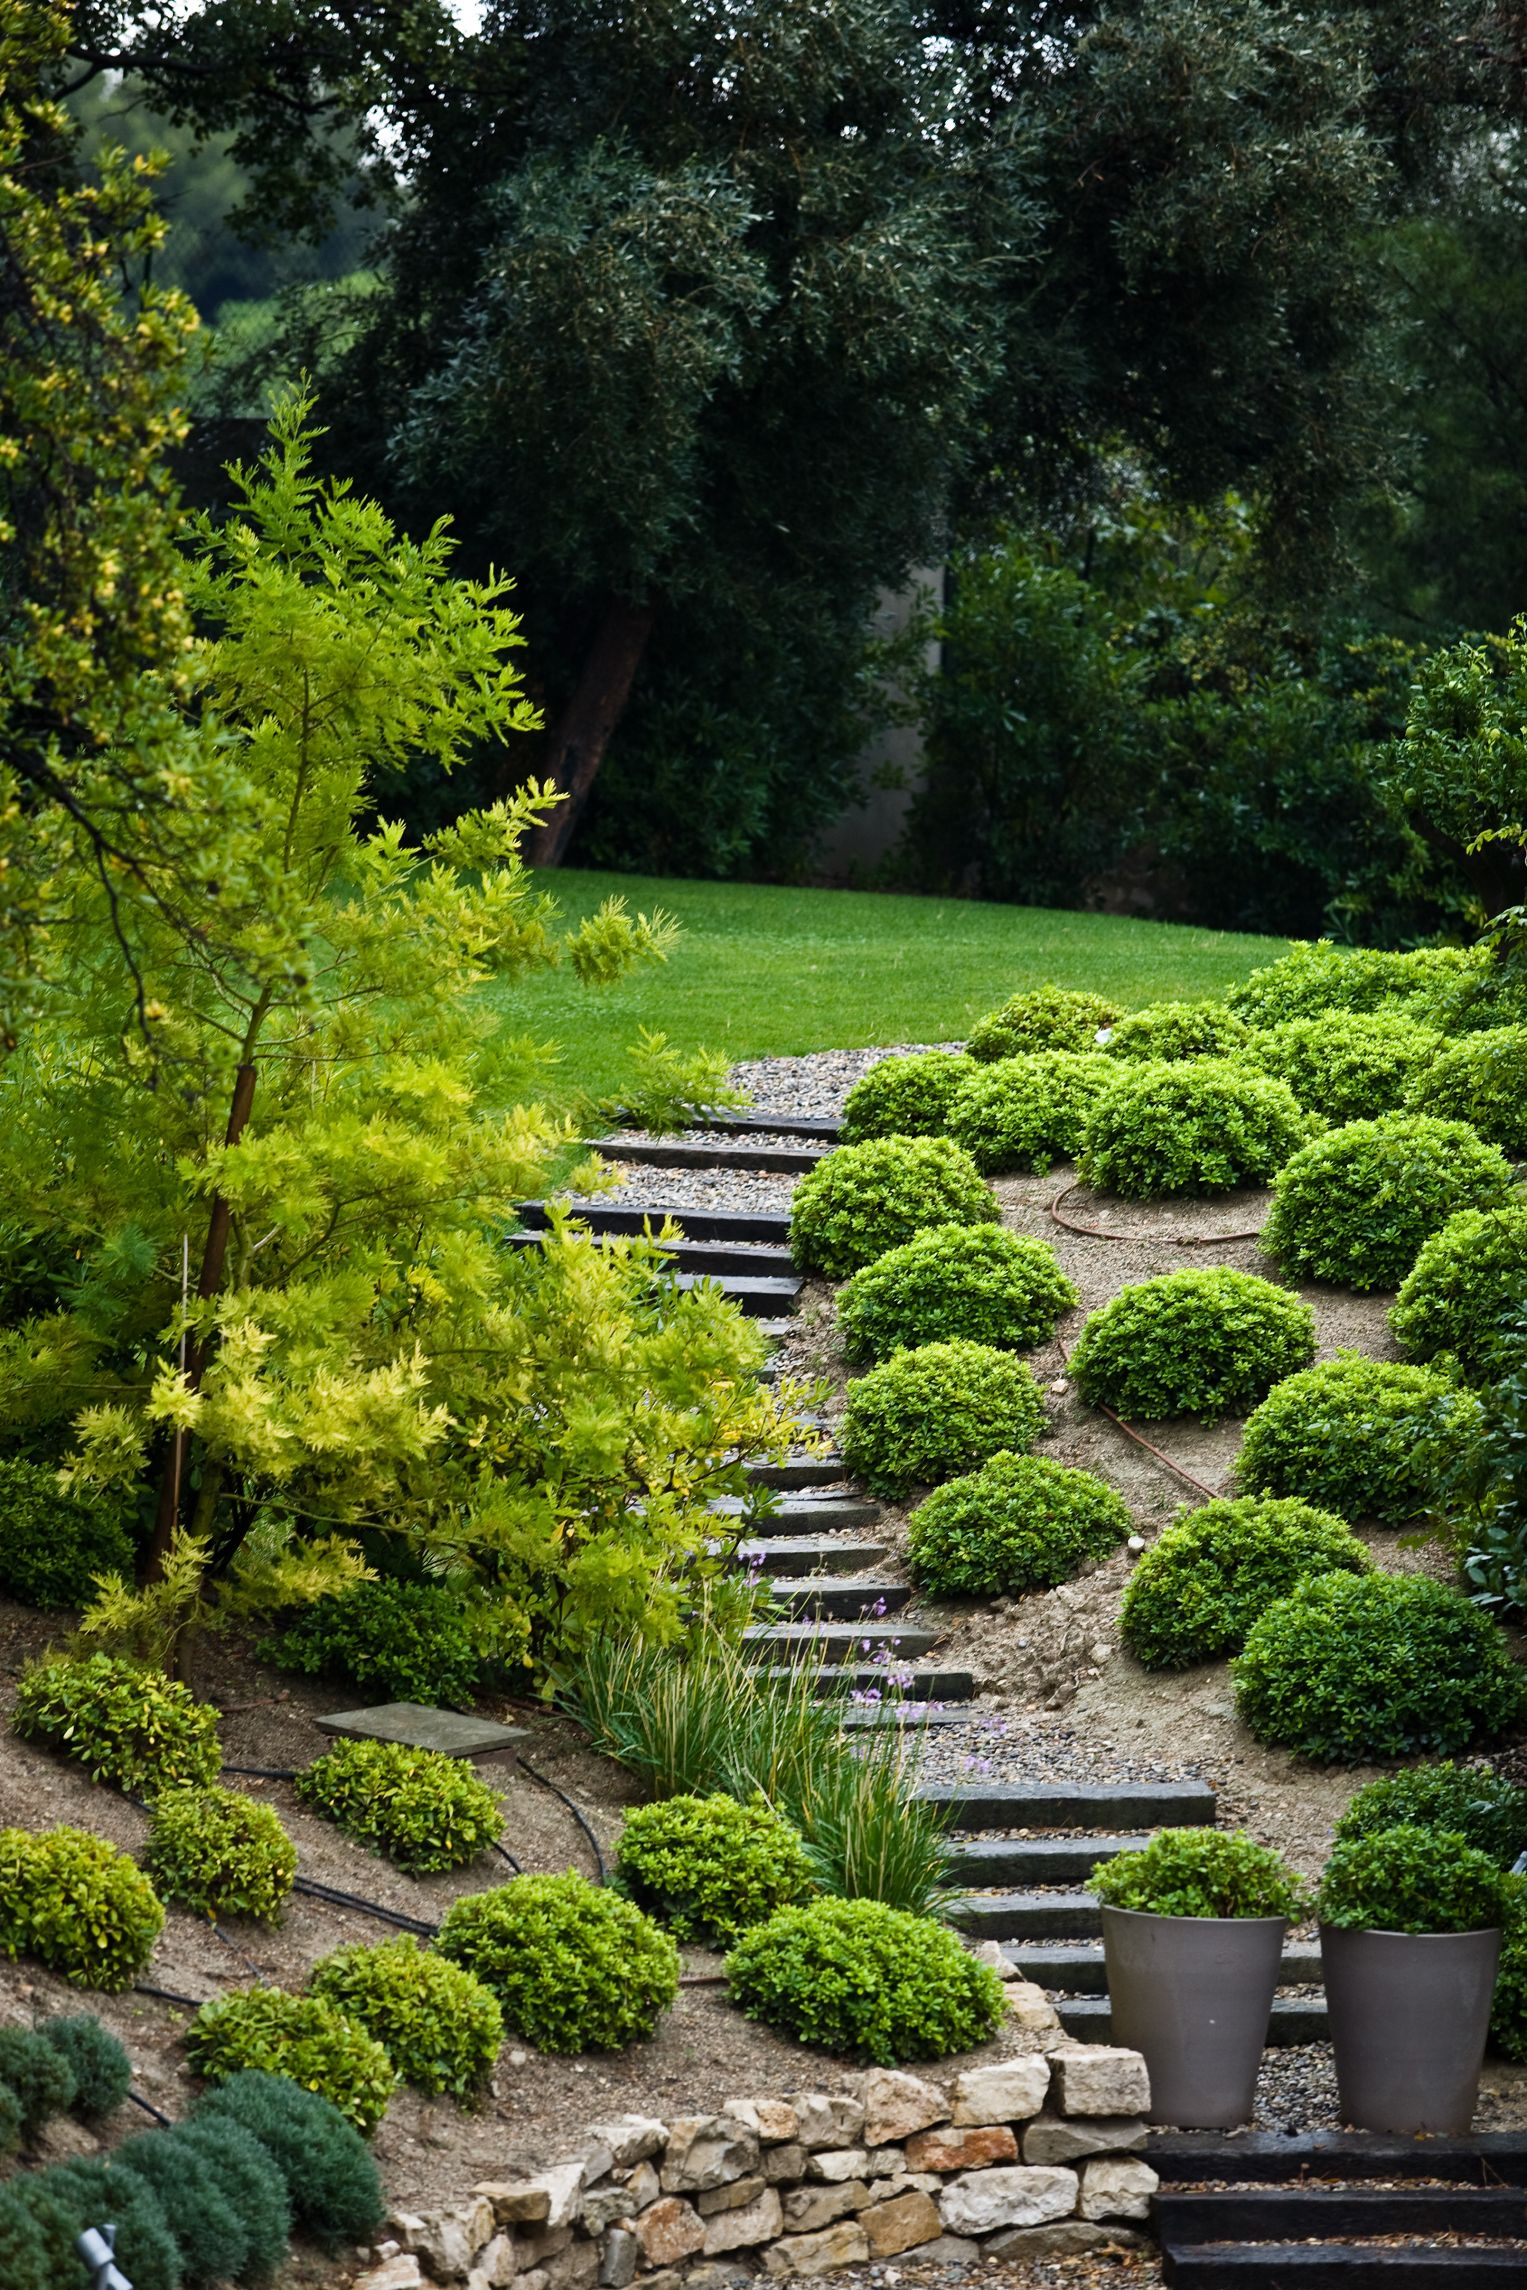 Do it yourself cheap and easy backyard landscaping solutions for do it yourself cheap and easy backyard landscaping solutions for steep grassy hills solutioingenieria Images